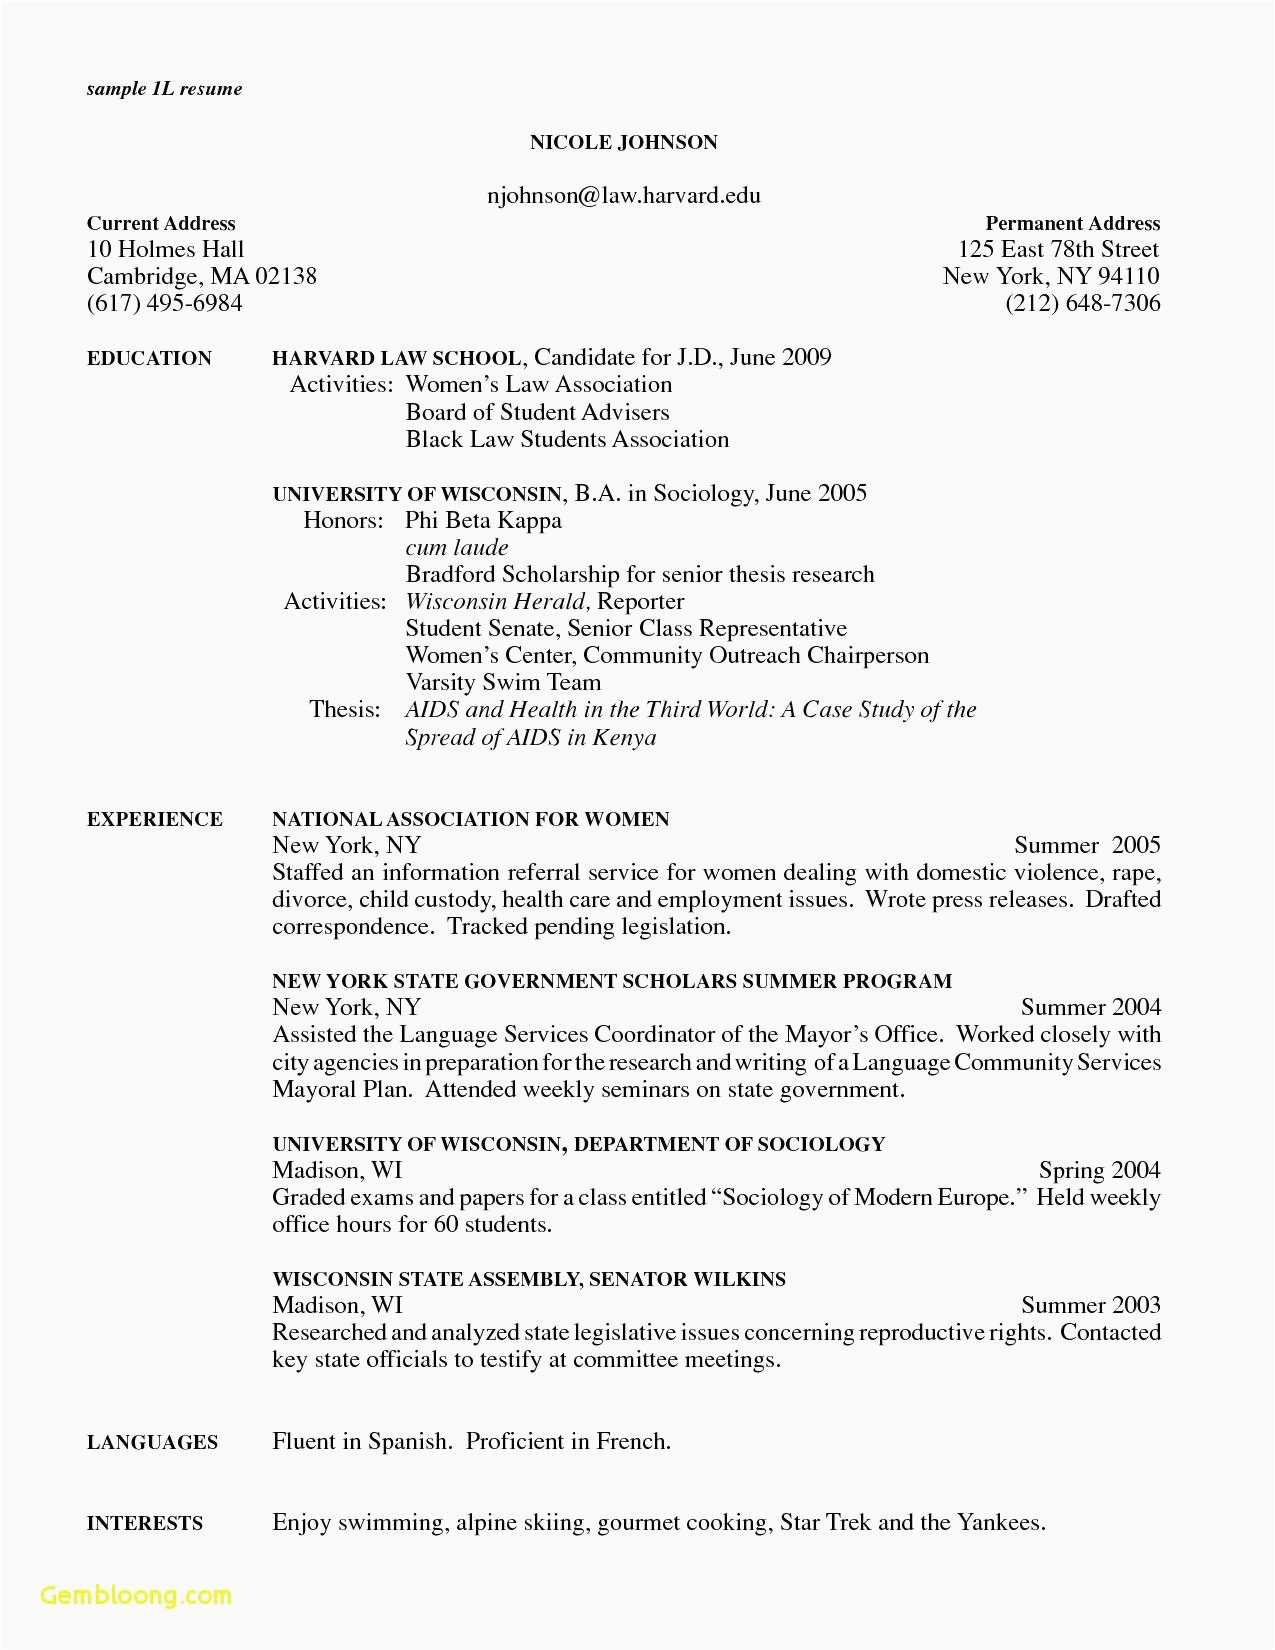 attorney resume template Collection-Free Legal Resume Template Best Law Student Resume Template Best Resume Examples 0d Simple 3-r